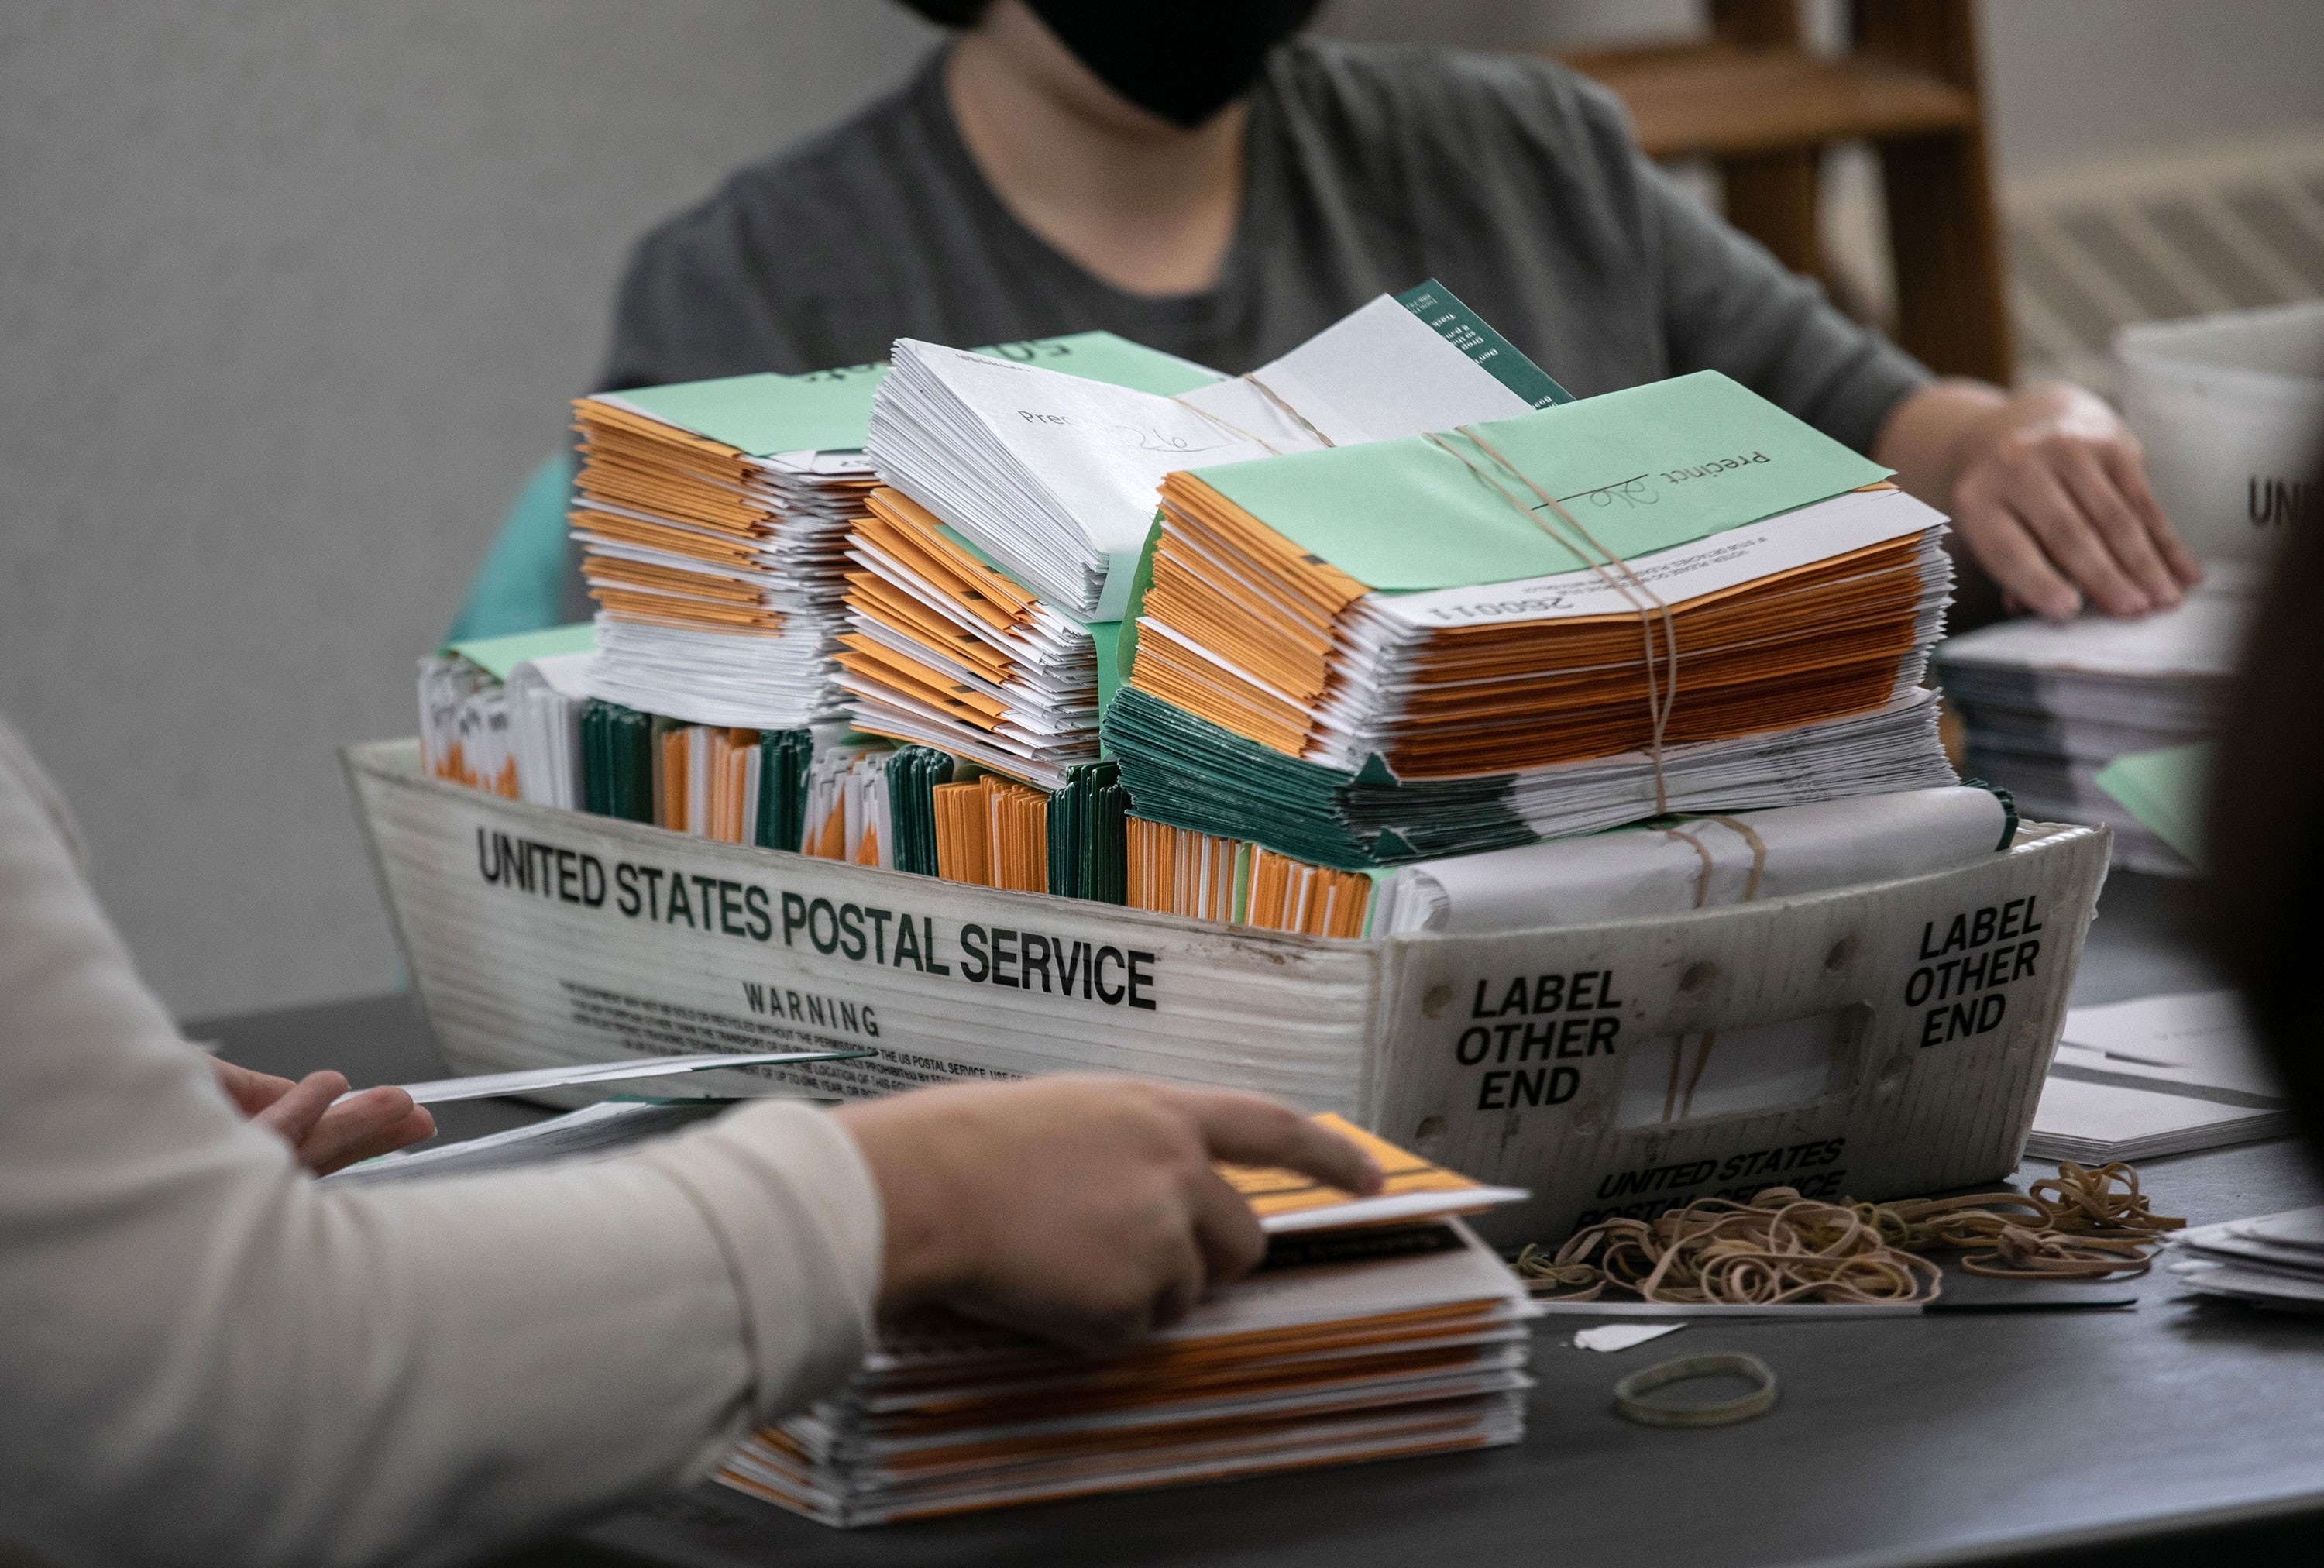 Election workers sort absentee ballot envelopes at the Lansing City Clerk's office on November 2 in Lansing, Michigan.